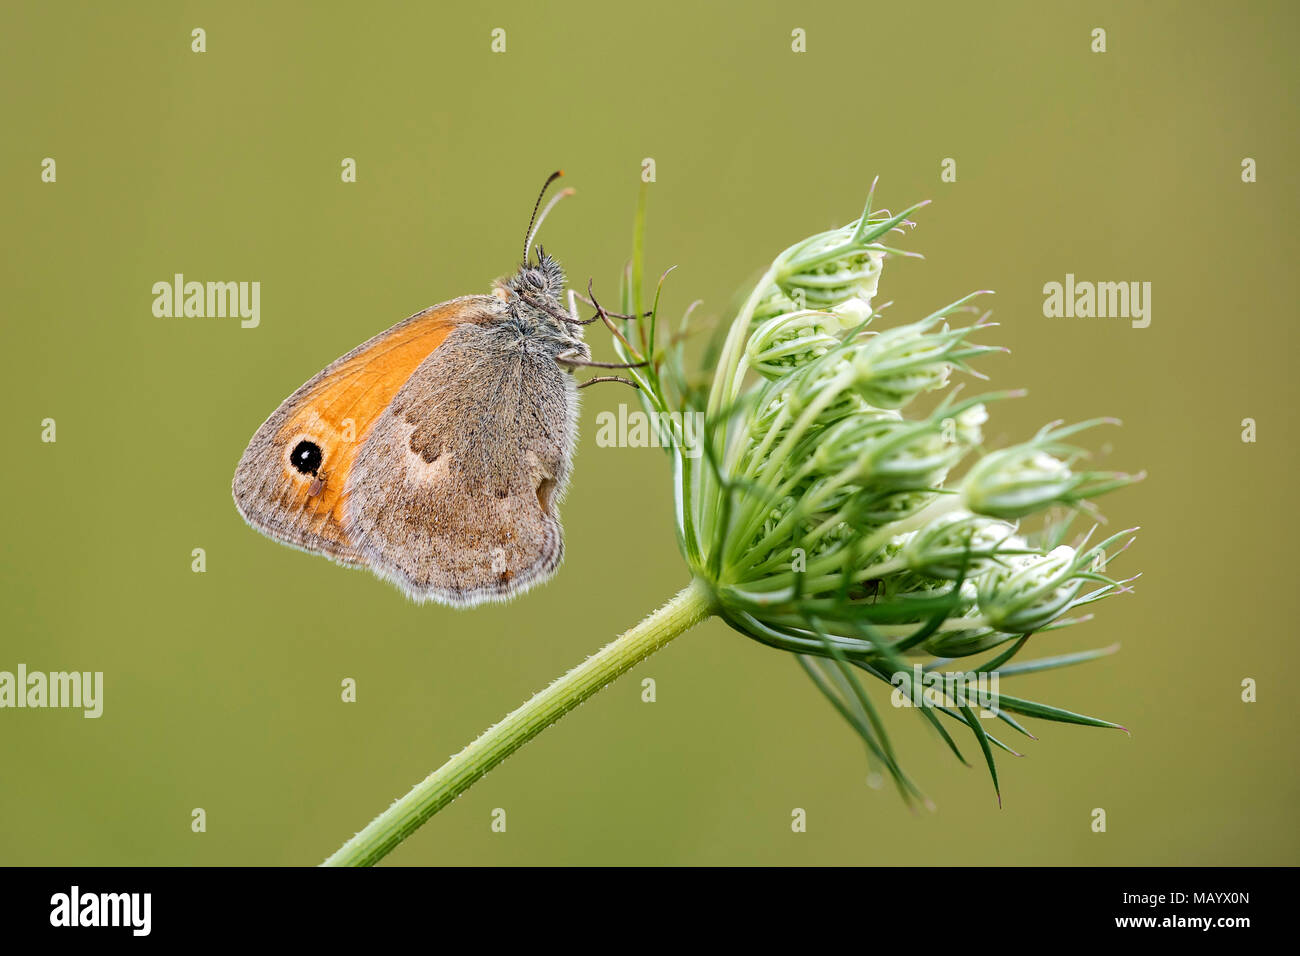 Small heath (Coenonympha pamphilus) on wild carrot (Daucus carota carota), Burgenland, Austria - Stock Image